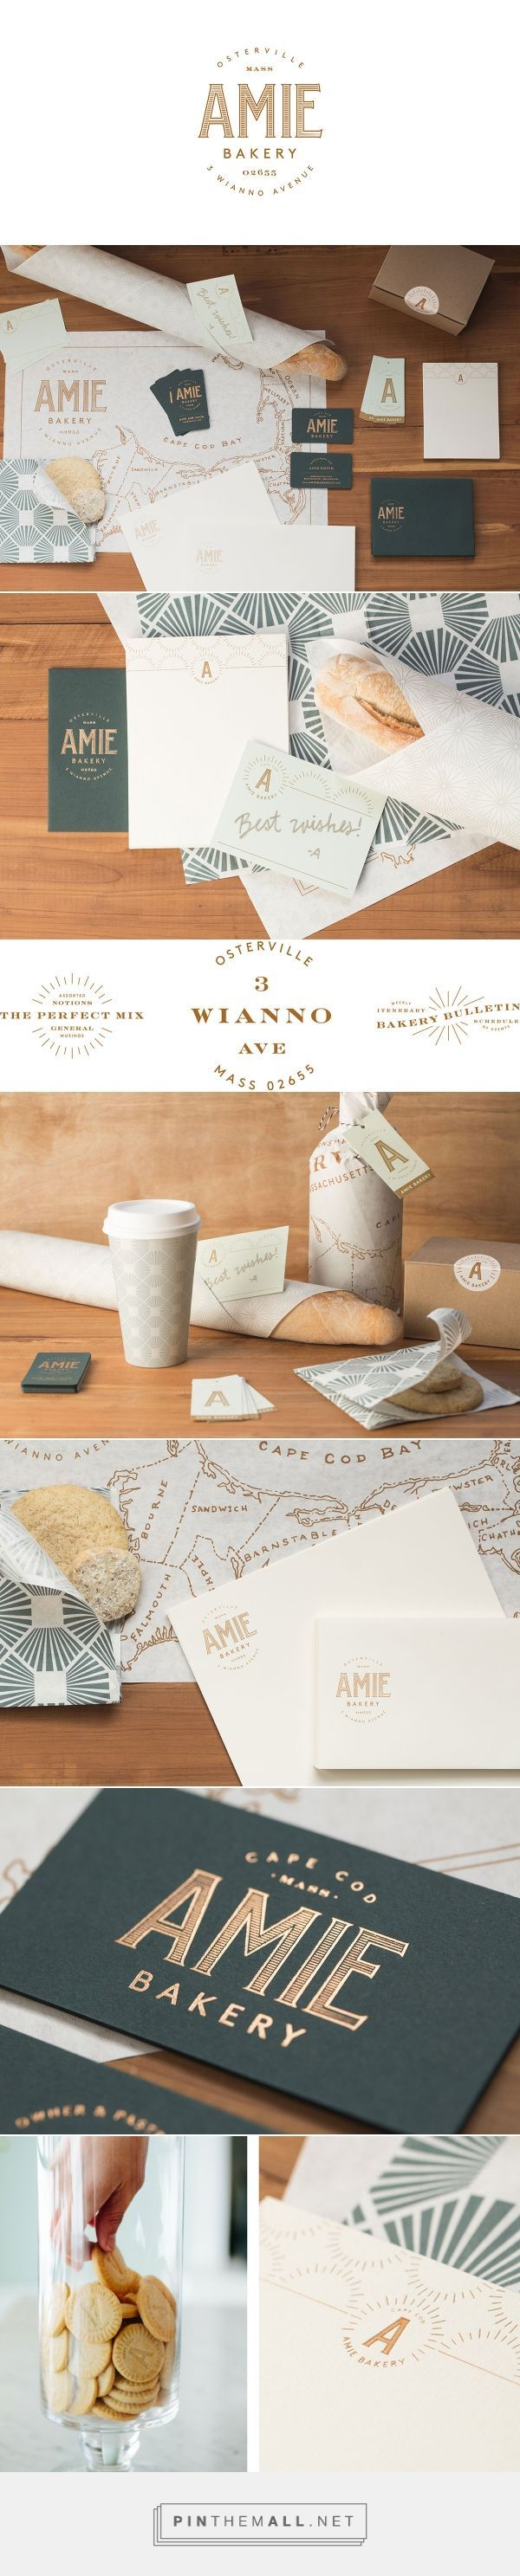 Amie Bakery on Behance by Peck & Co, Nashville, TN curated by Packaging Diva…